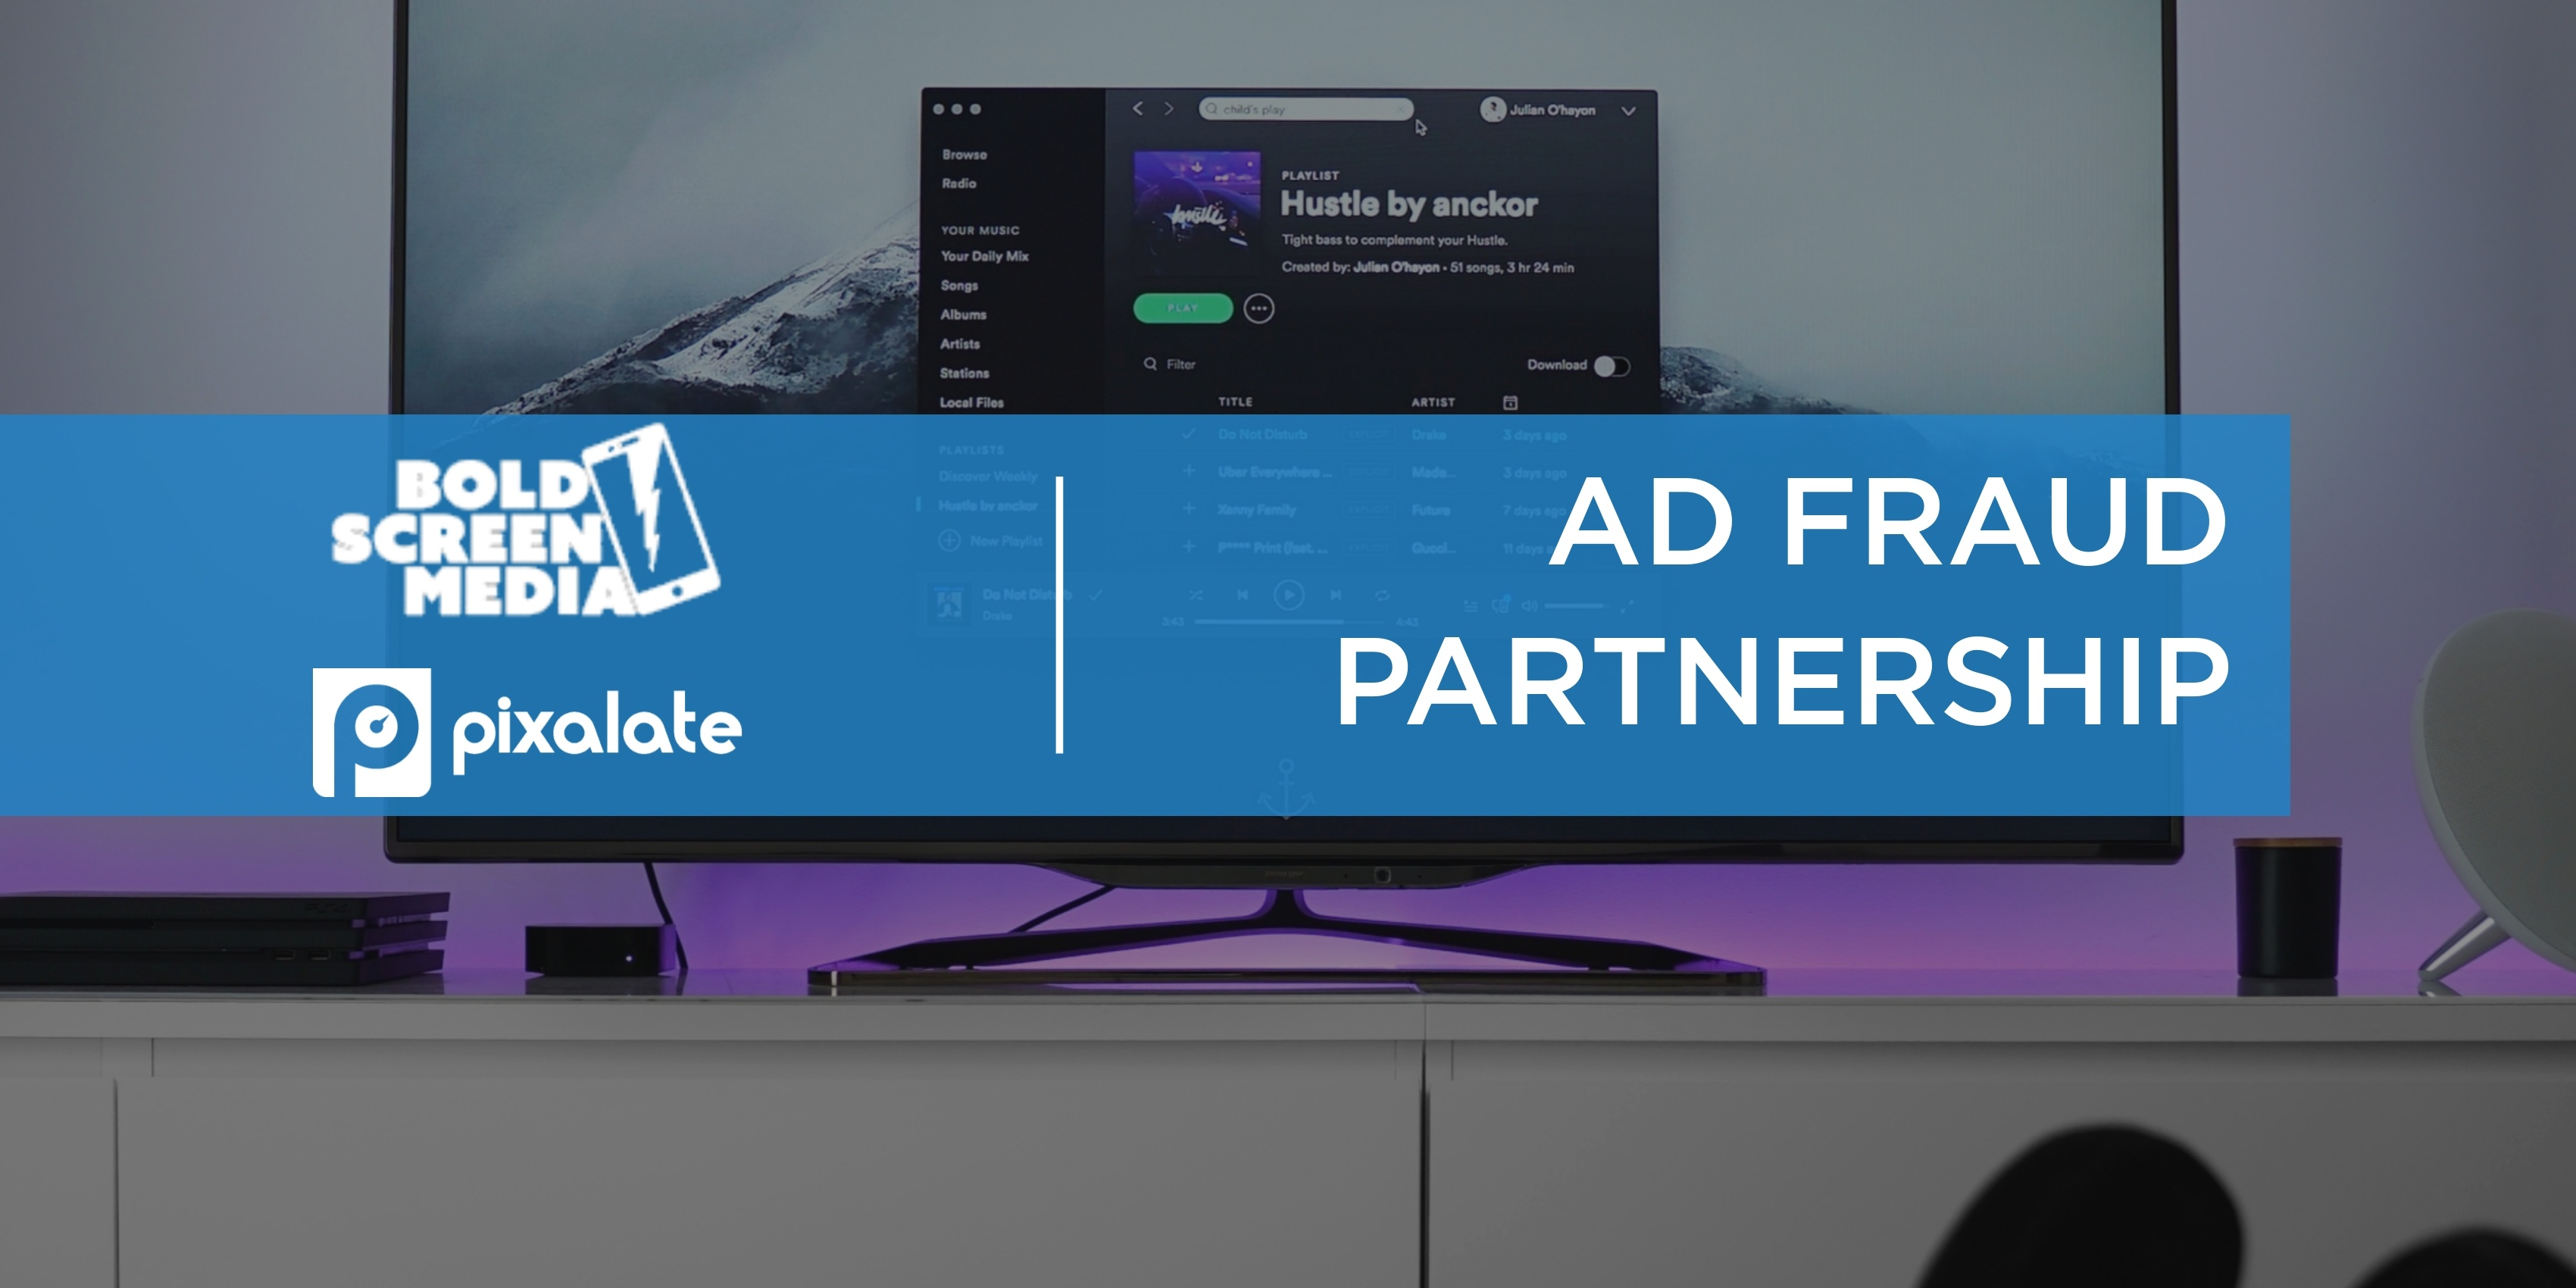 bold-screen-media-pixalate-partnership-announcement